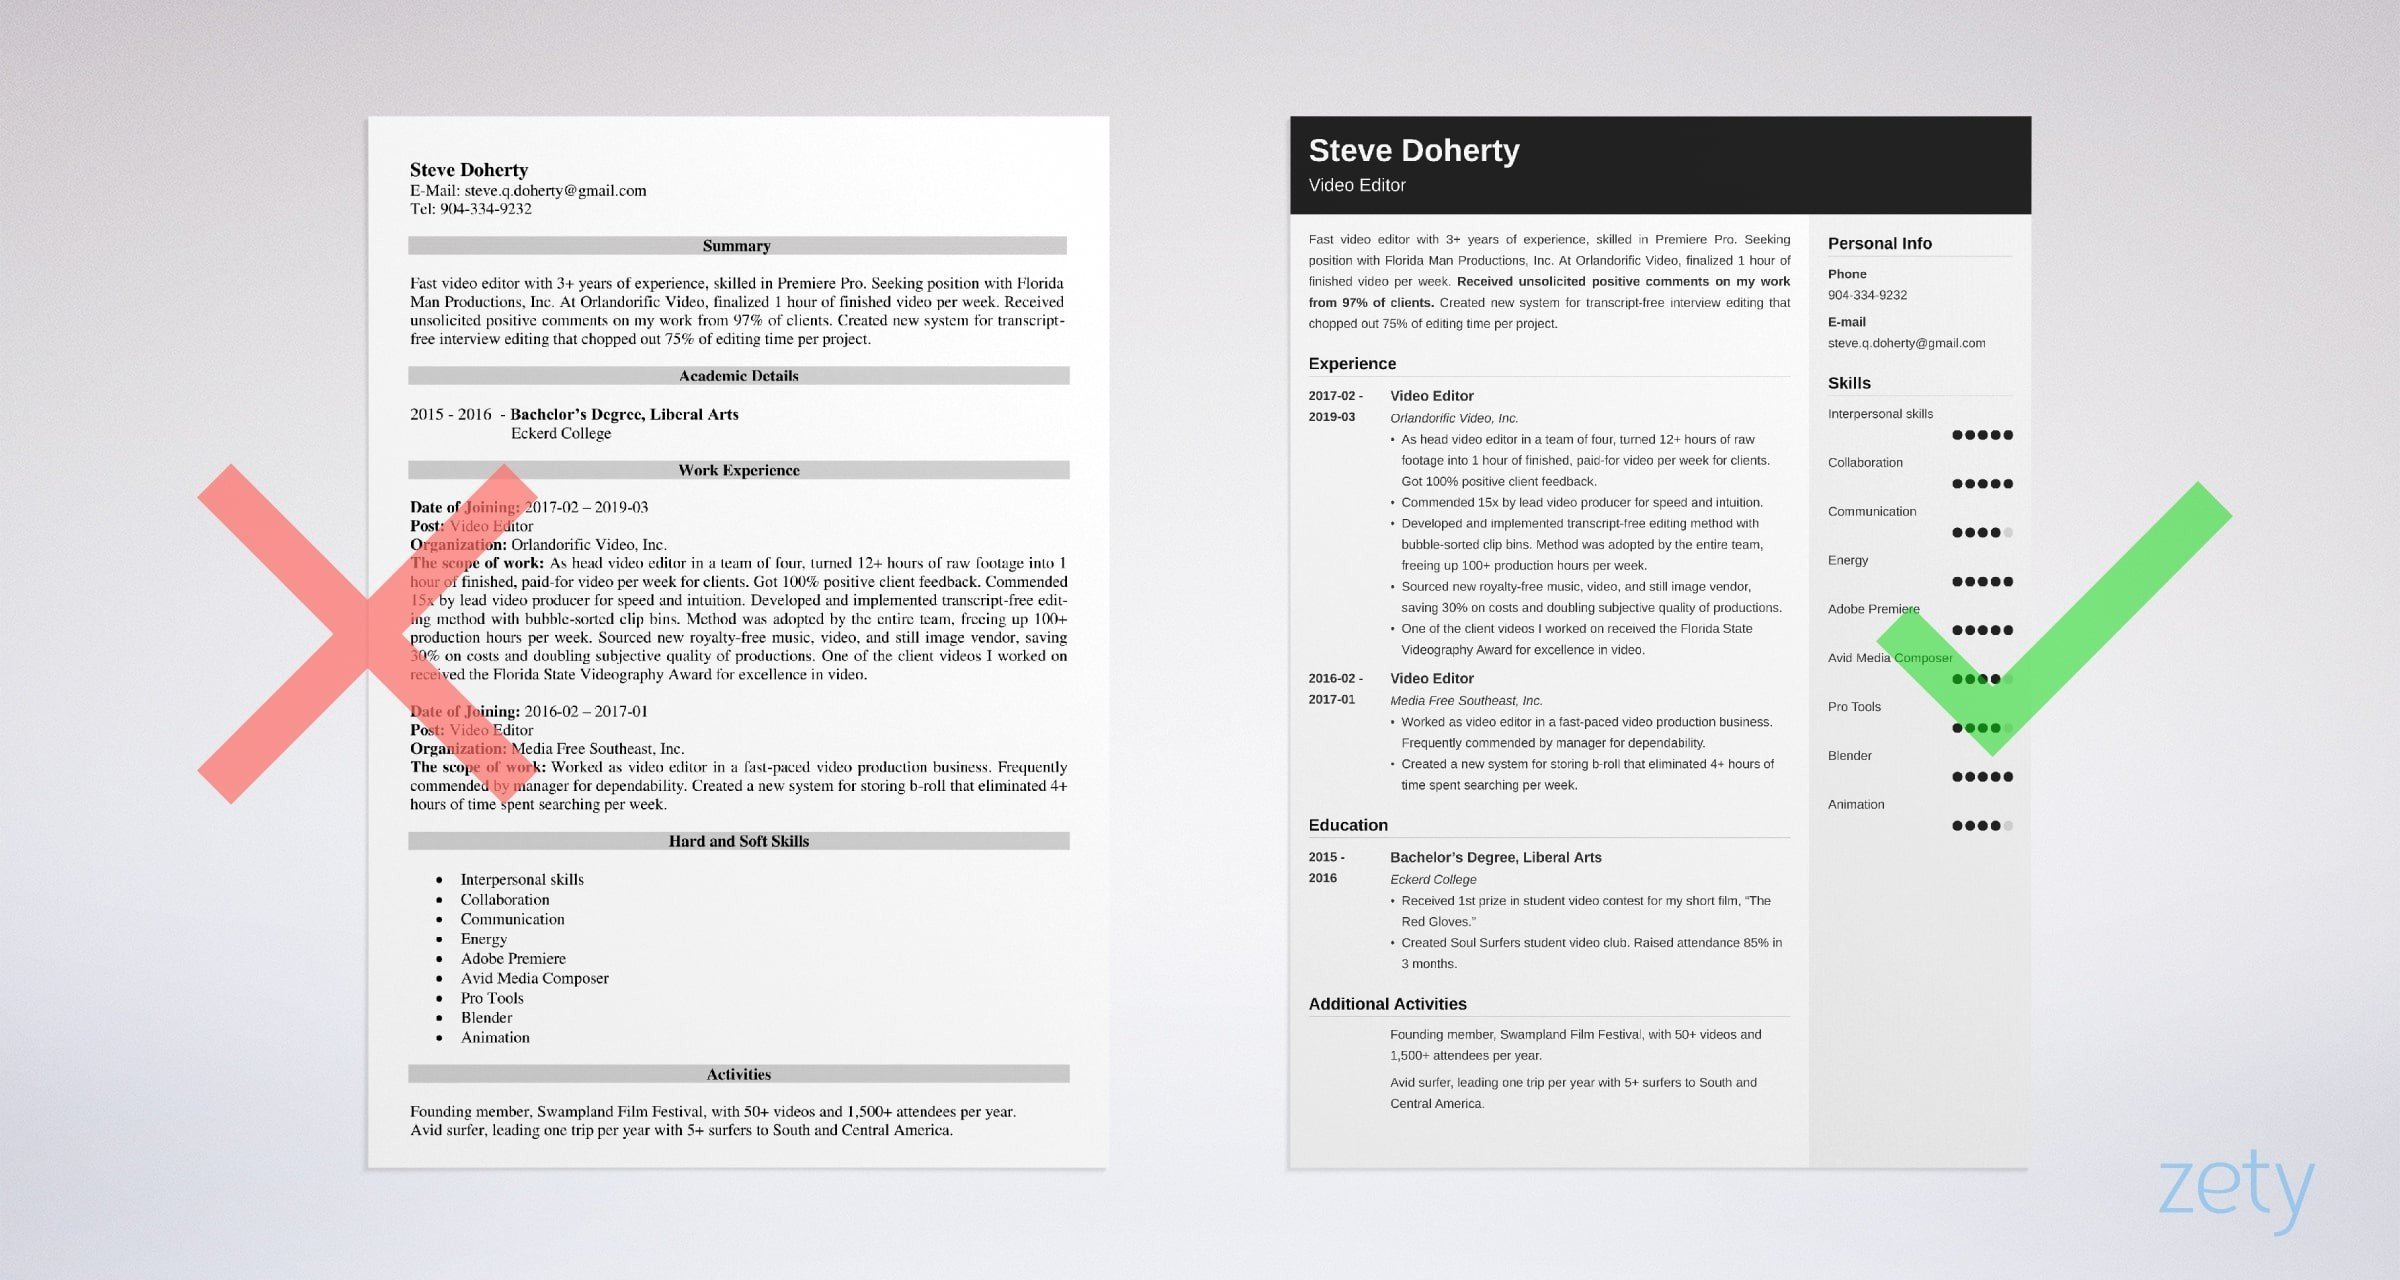 editor resume example template guide sample for editing job the most professional career Resume Sample Resume For Editing Job